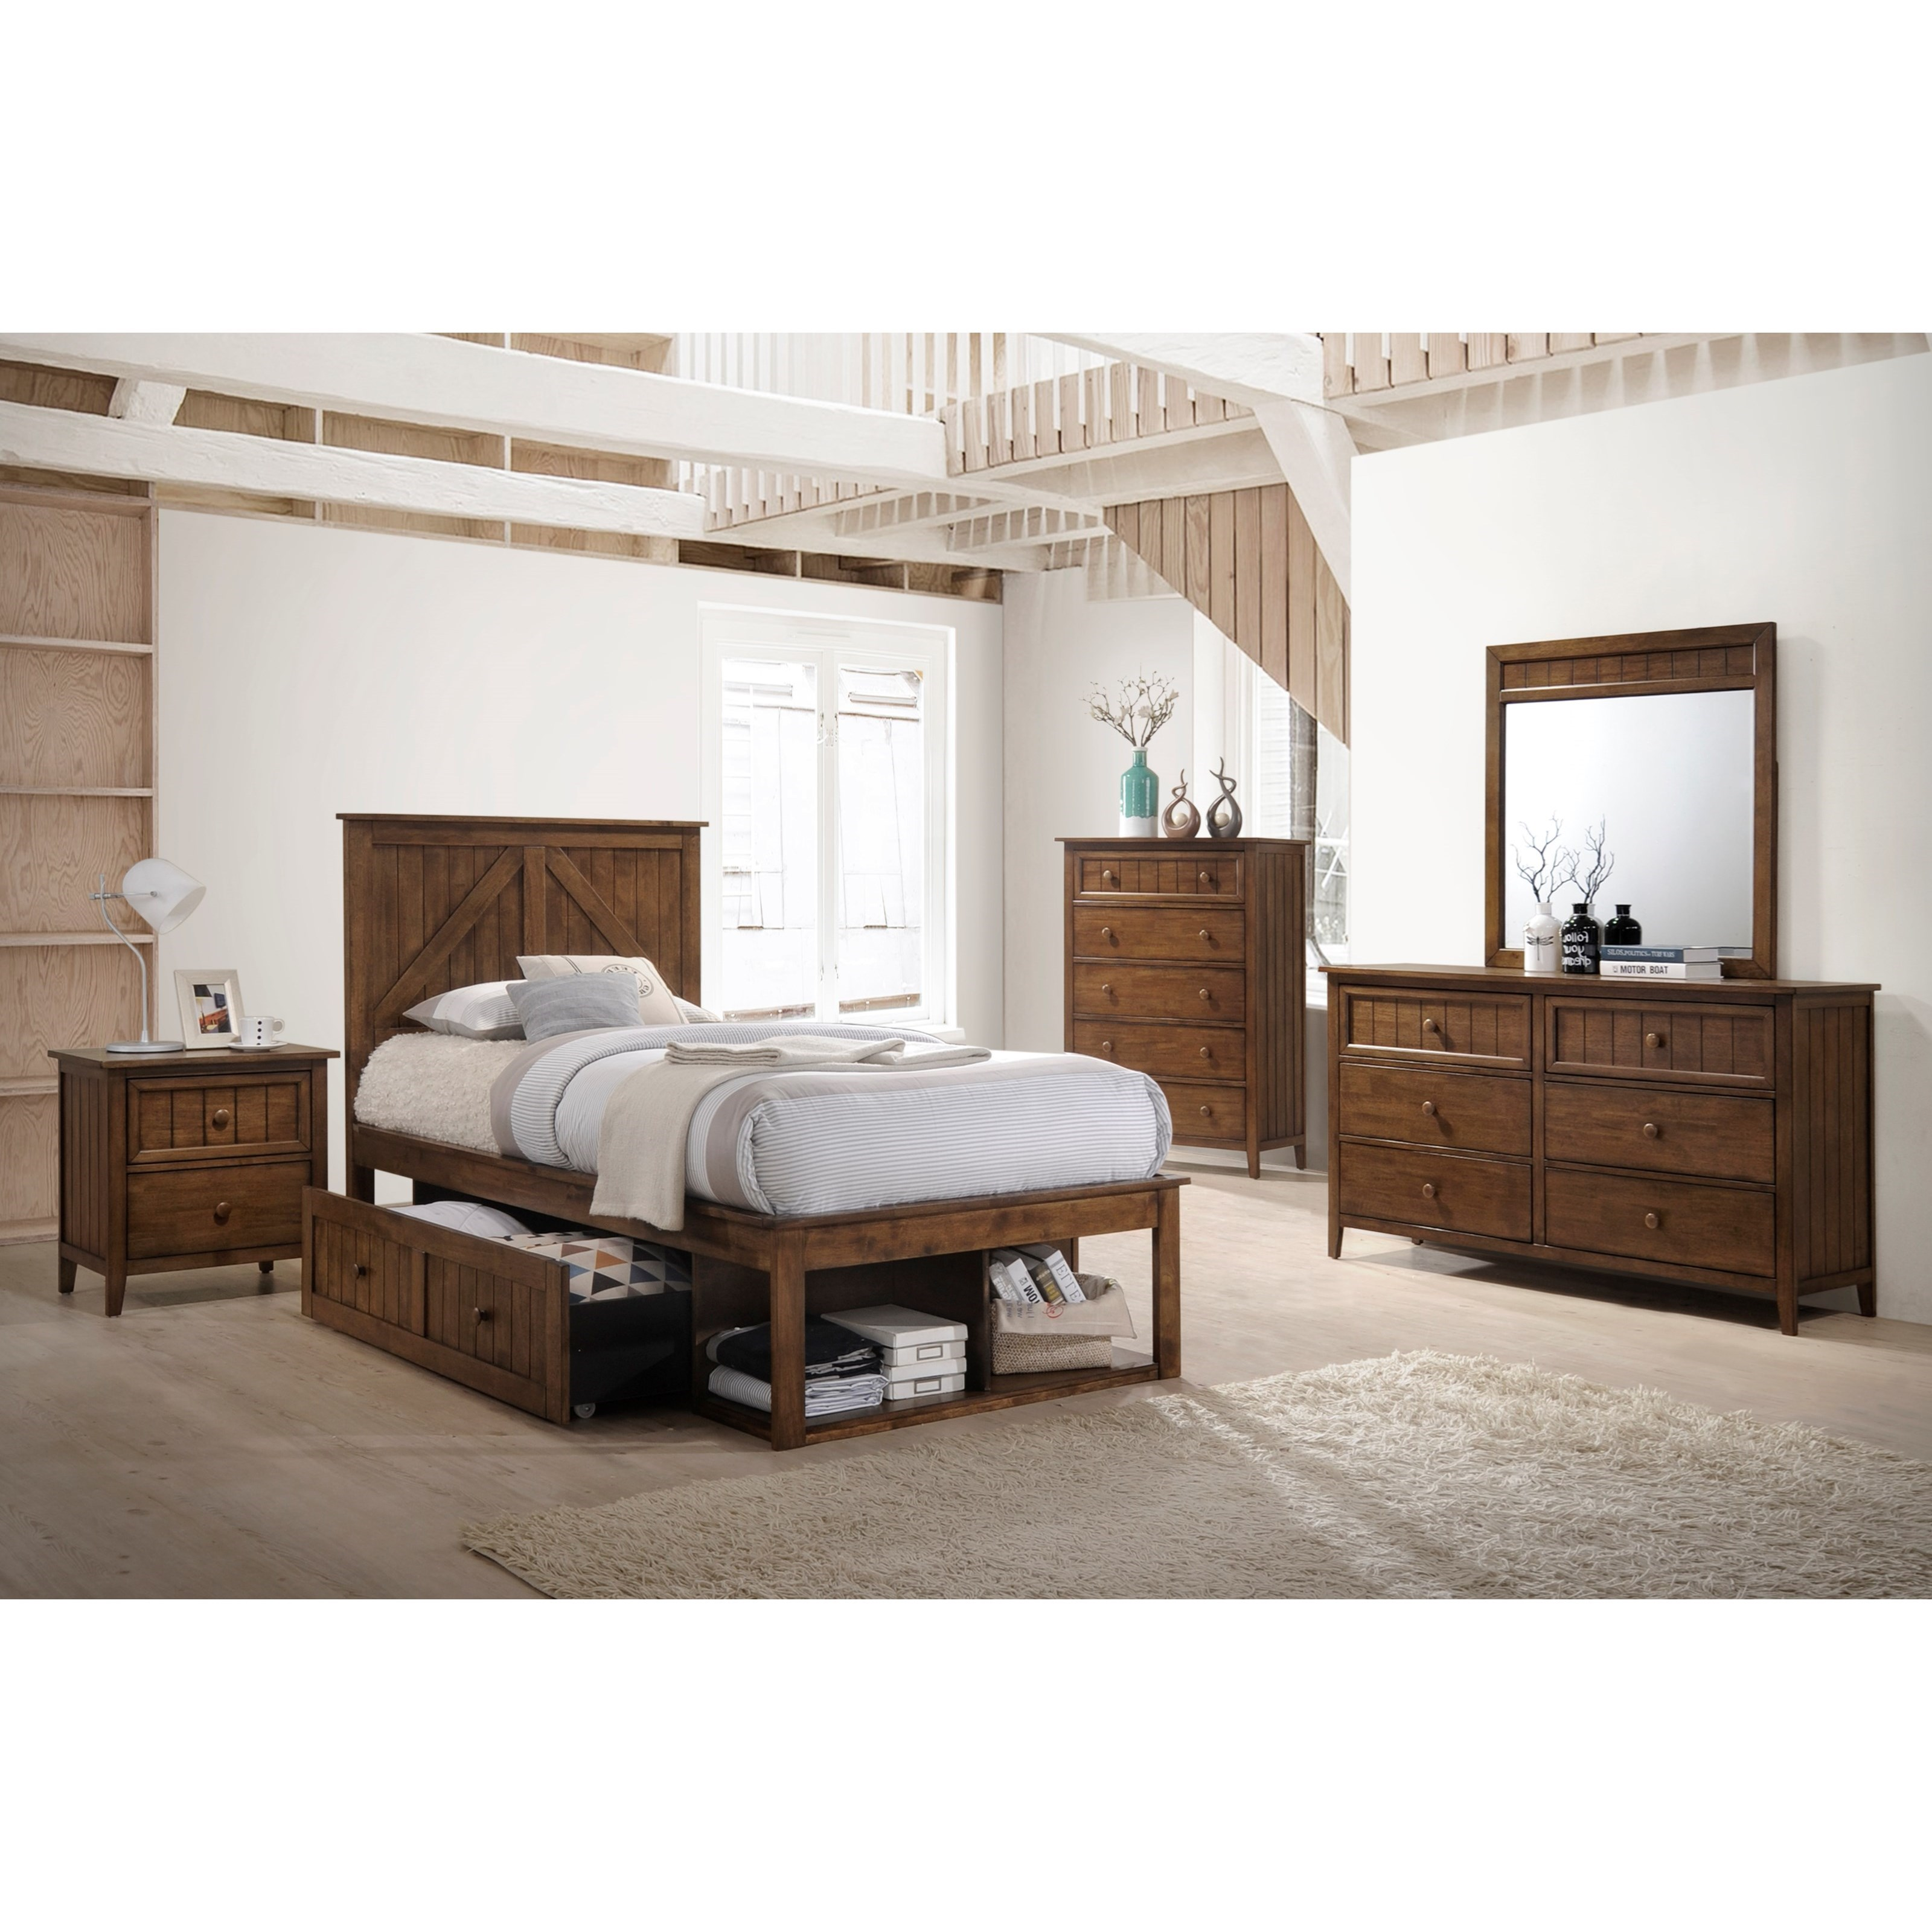 Ashland Full Bedroom Group by United Furniture Industries at Dream Home Interiors